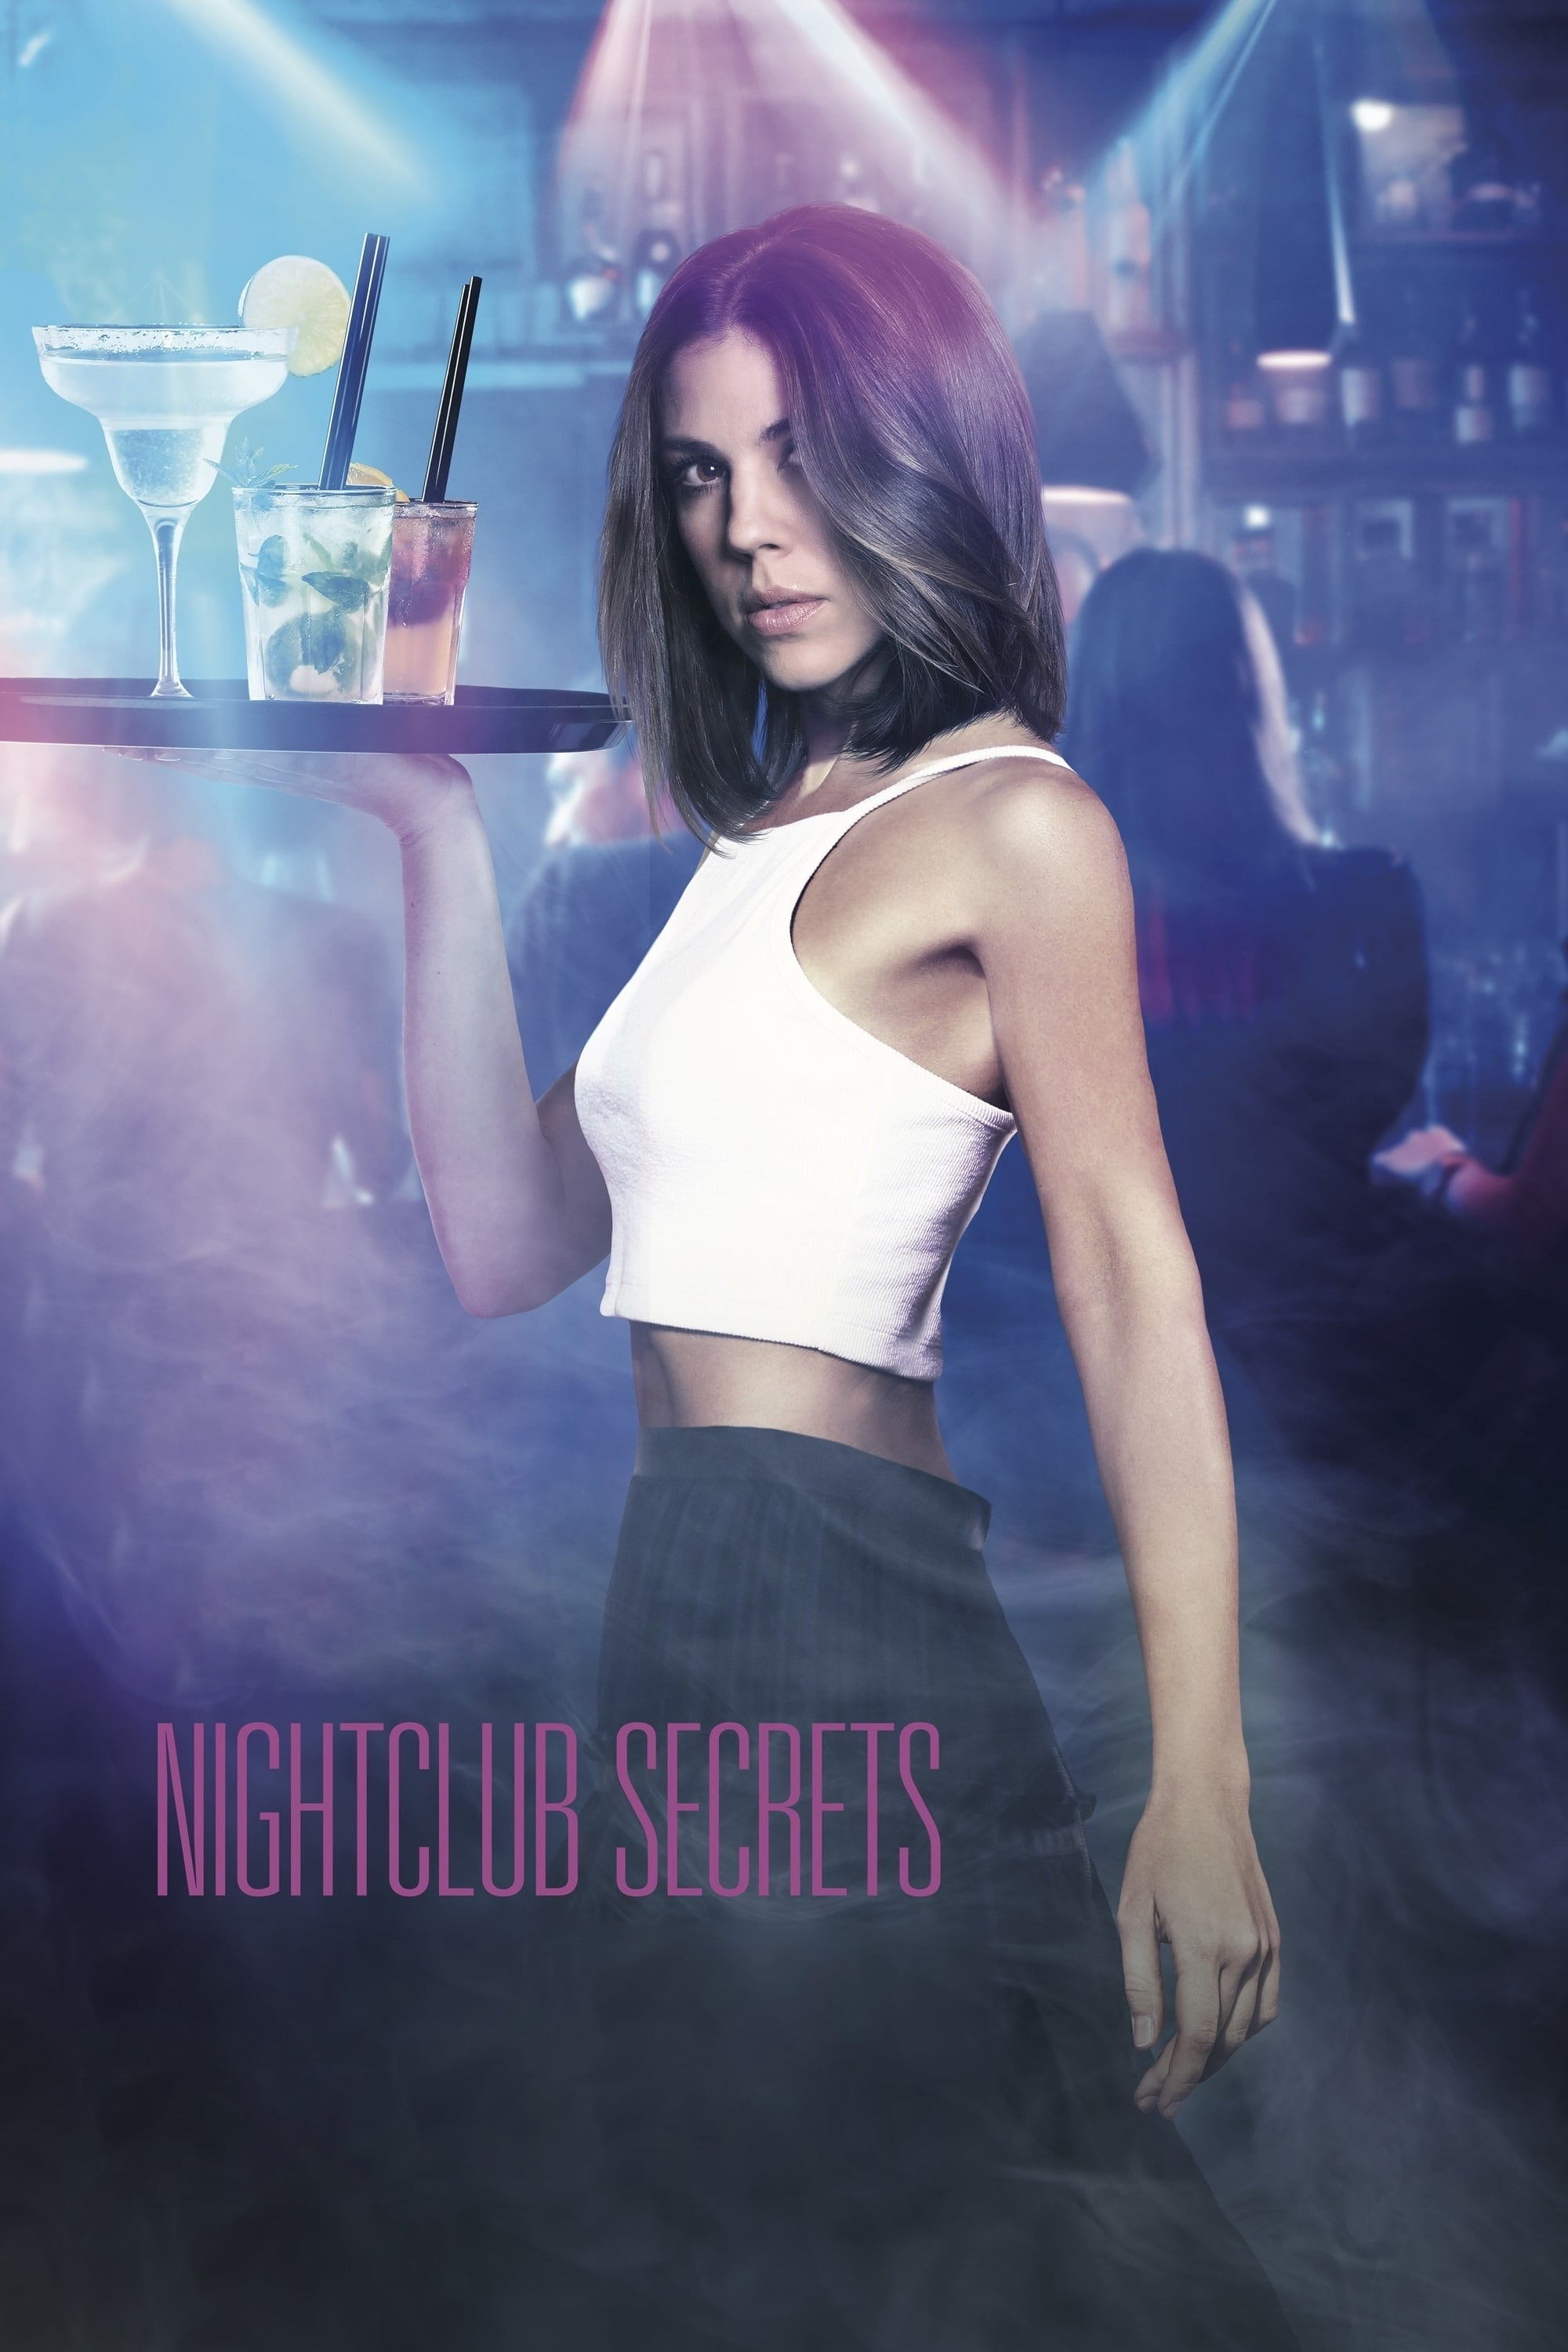 Nightclub Secrets